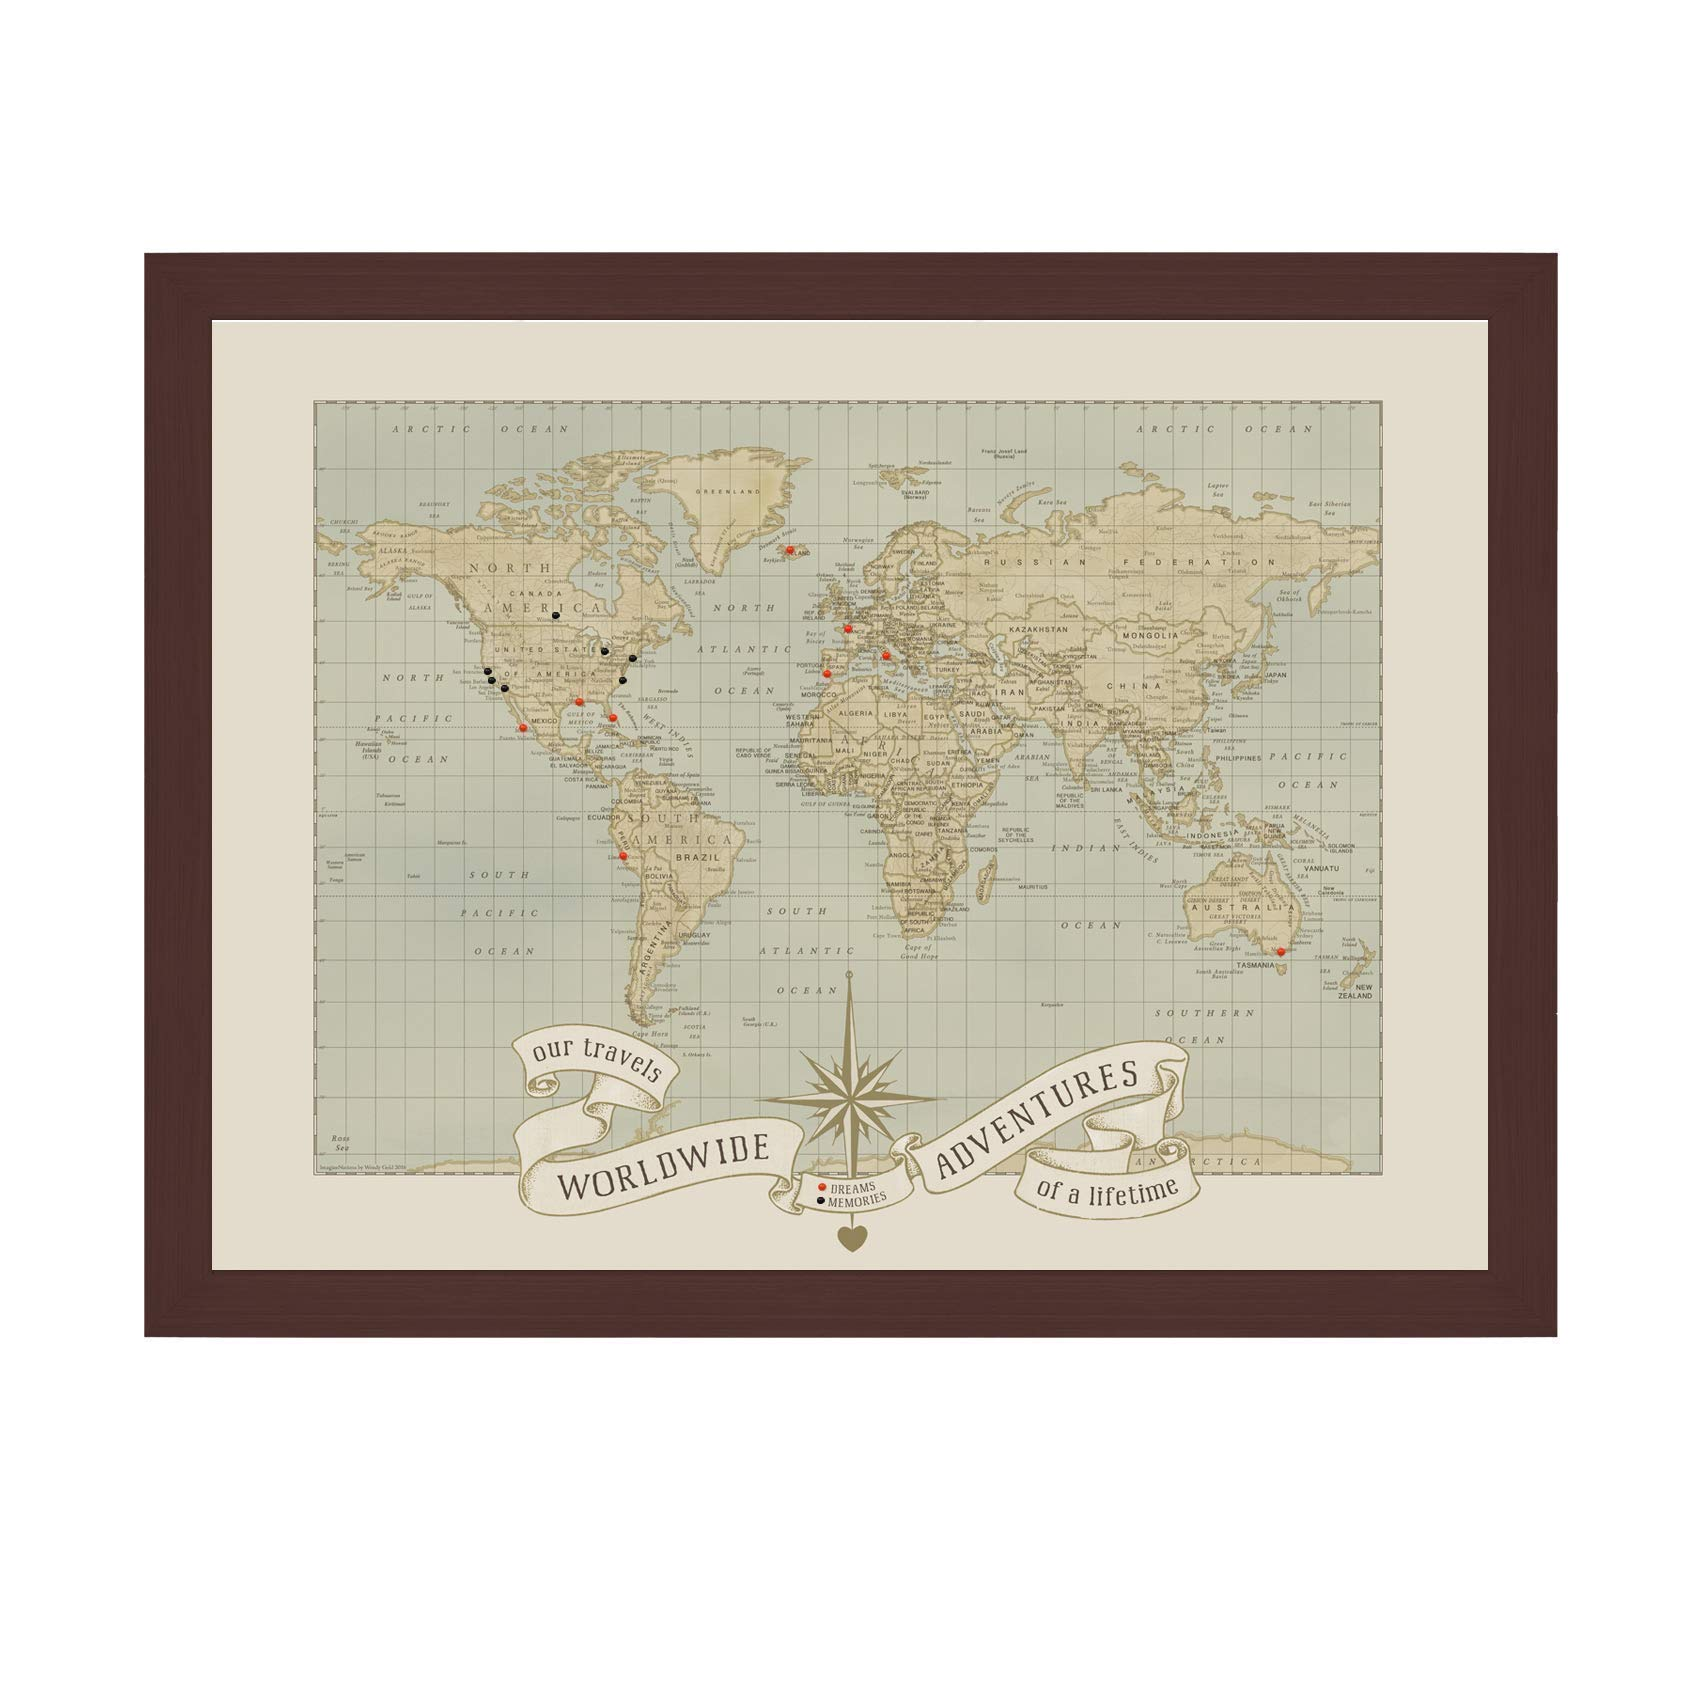 Push Pin World Map | Push Pin Travel Map, World | Handmade in USA | Push Pin World Travel Map | World Map Art Wall Decor | Large Wall Maps Of The World | World Map Pin Board by Wendy Gold Studios